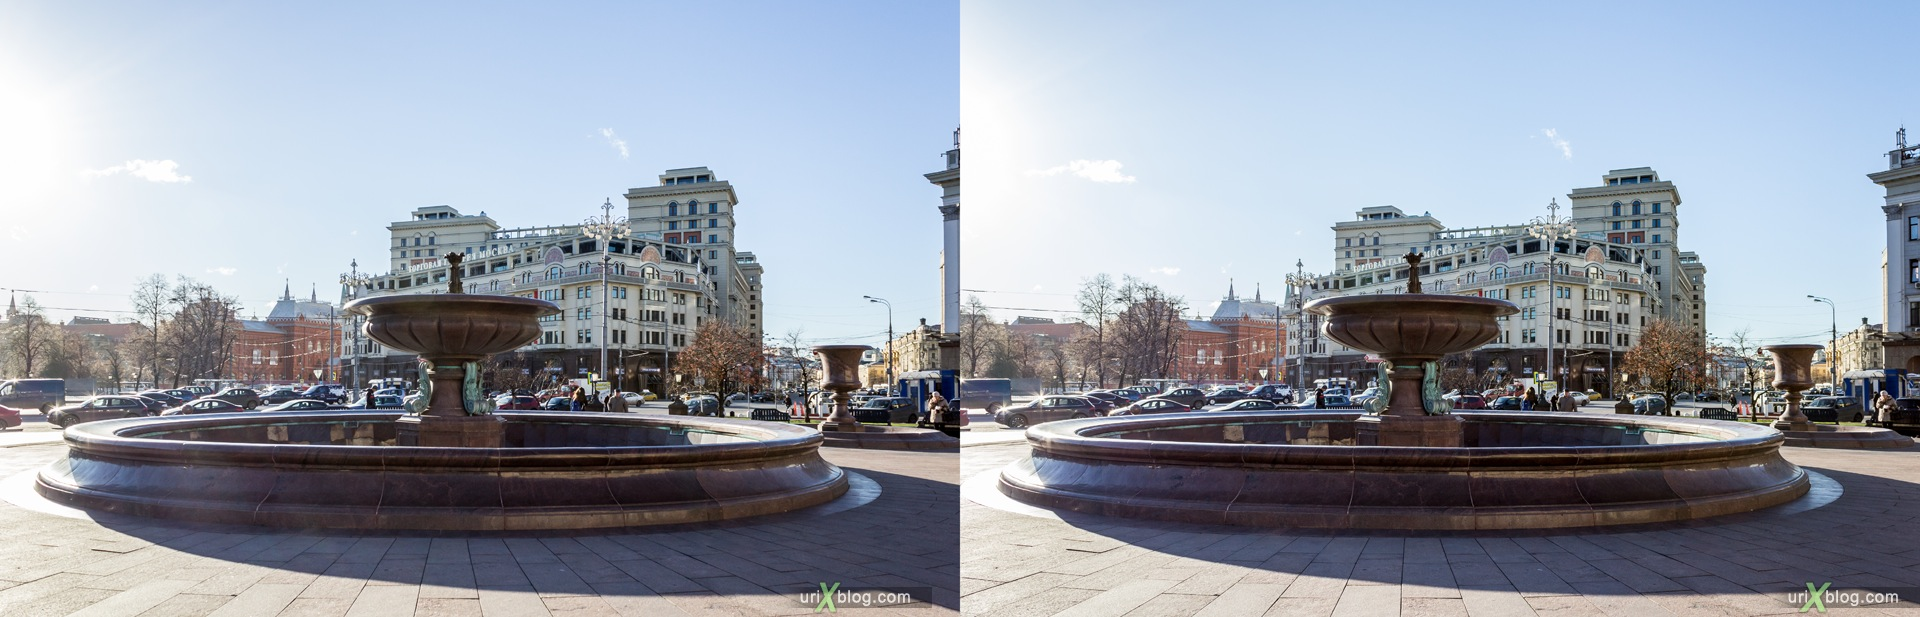 2013, Moscow, Russia, Teatralnaya square, Theatre square, Hotel Moscow, fountain, 3D, stereo pair, cross-eyed, crossview, cross view stereo pair, stereoscopic